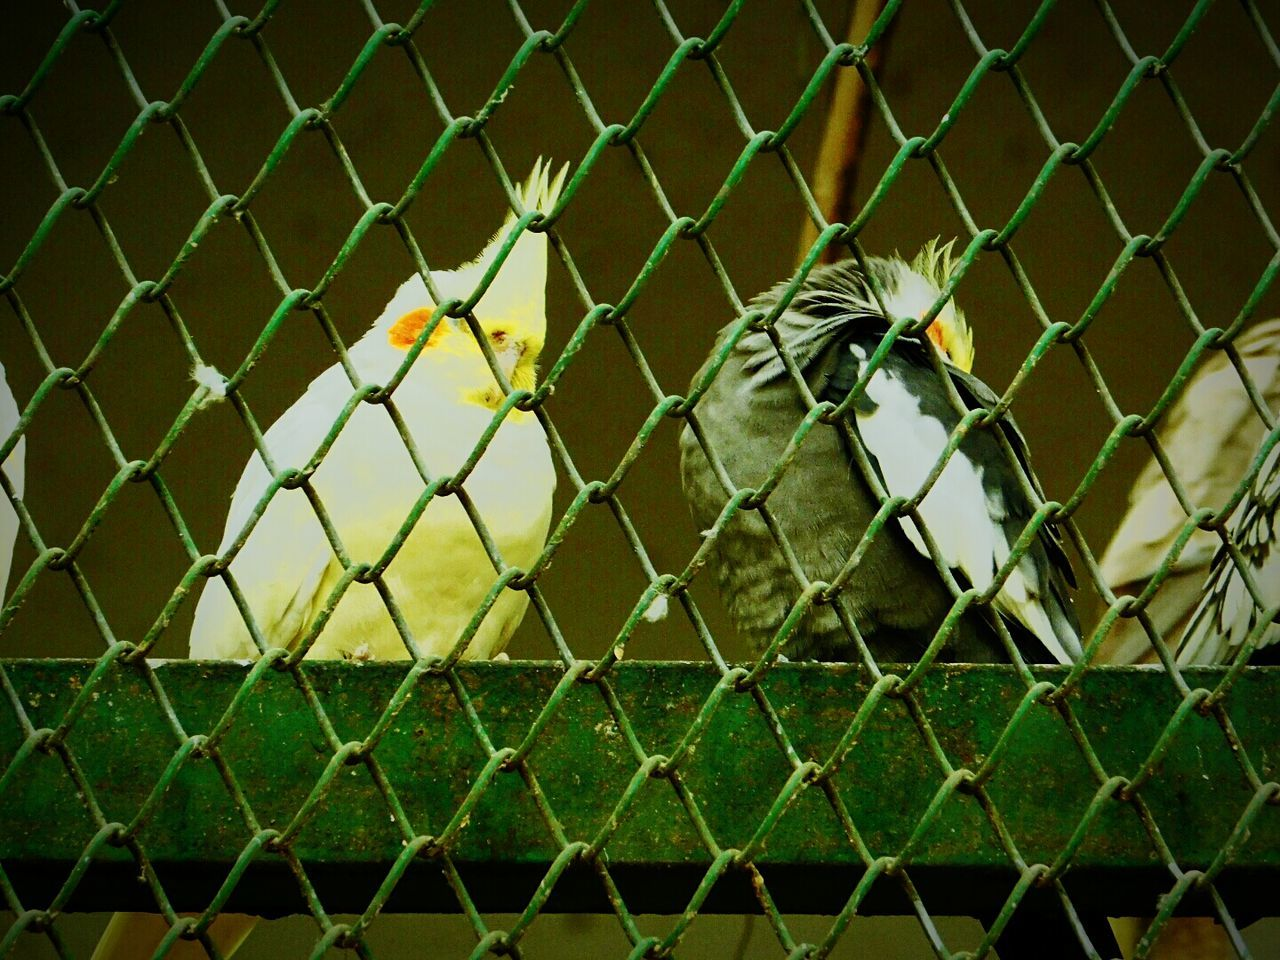 Love Birds Caged Sadness😢 Looking For Freedom Wildlife Photography